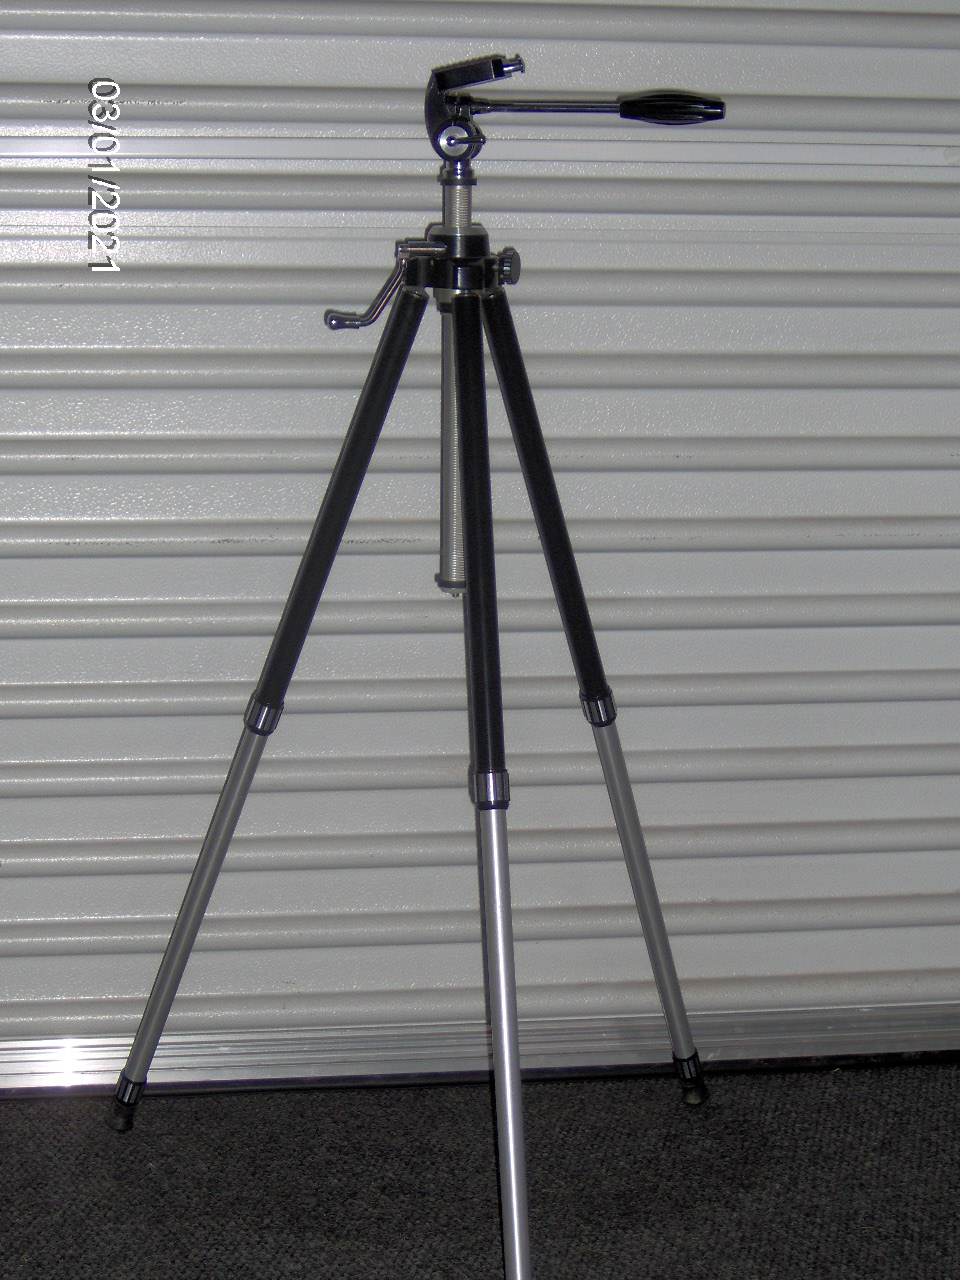 3 section EV Tripod for photographic work